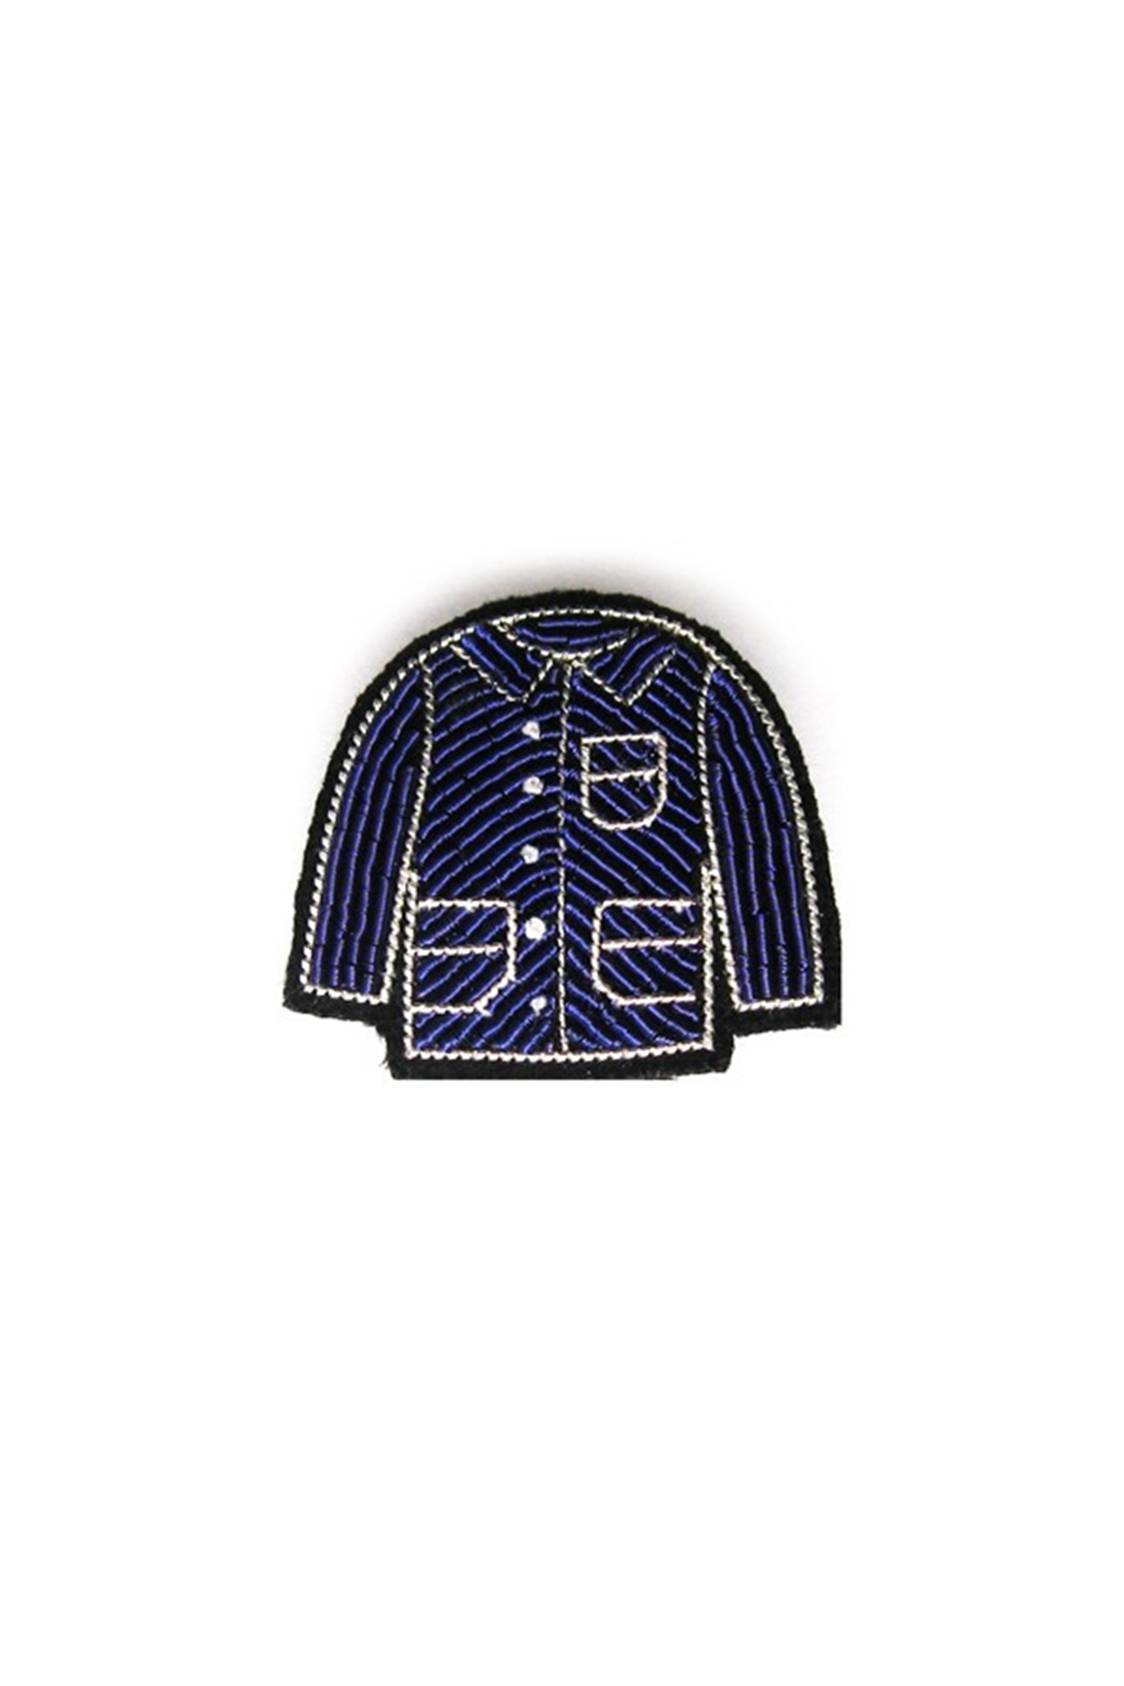 Work Jacket Pin